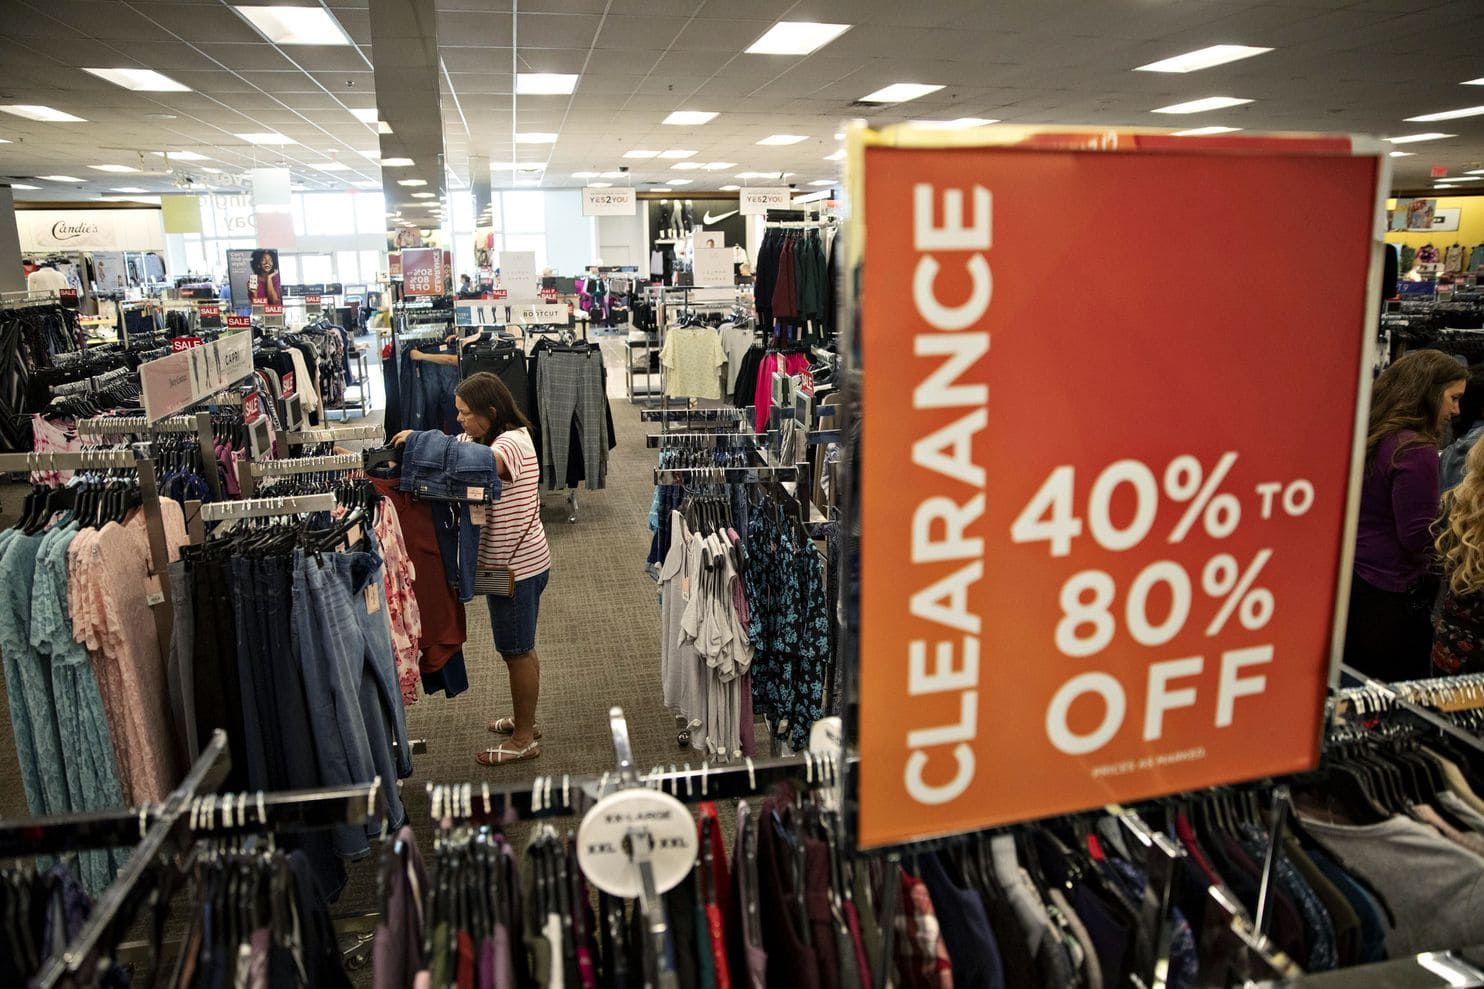 J.C. Penney and Kohl's have failed their most loyal